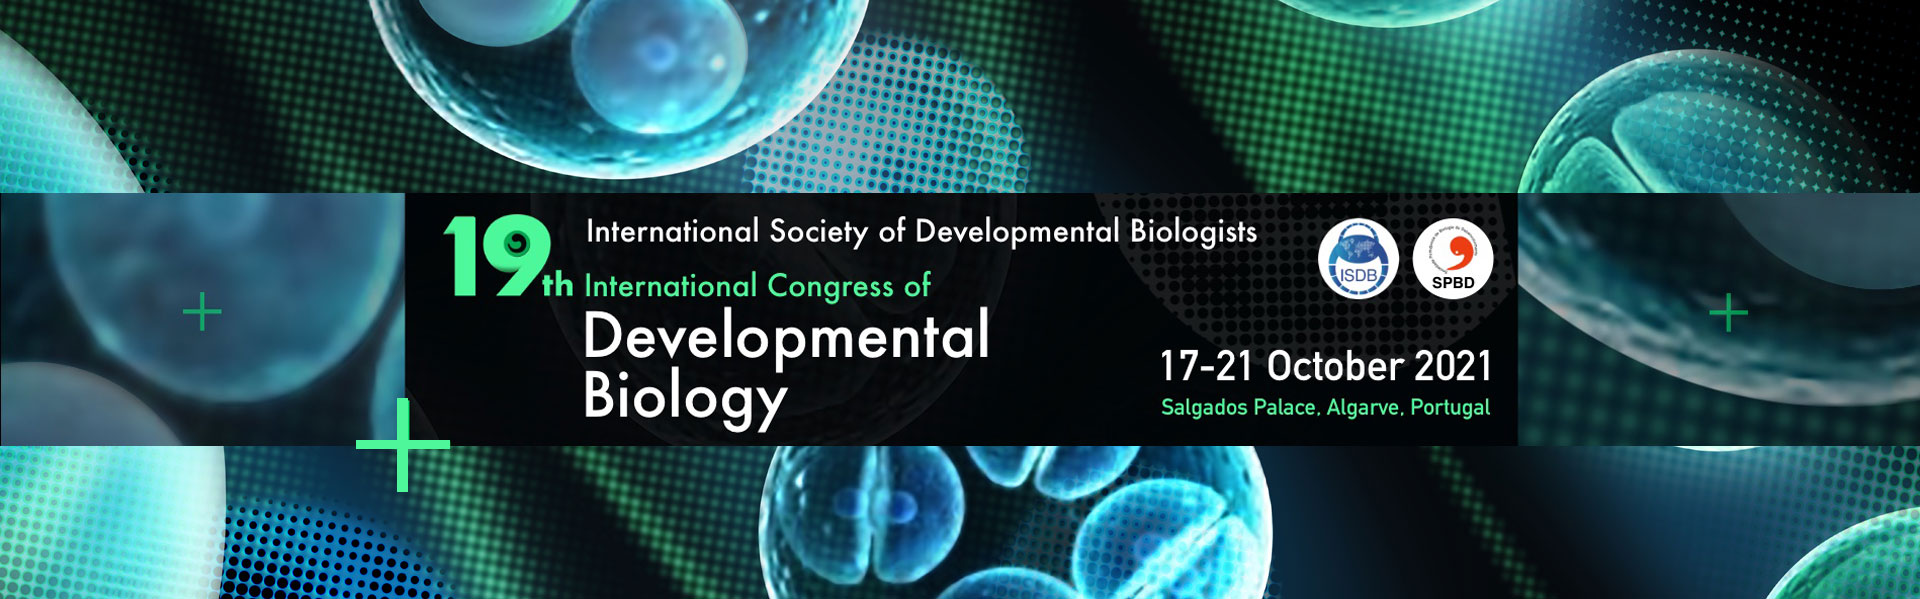 isdb2021-conference-banner-final-1